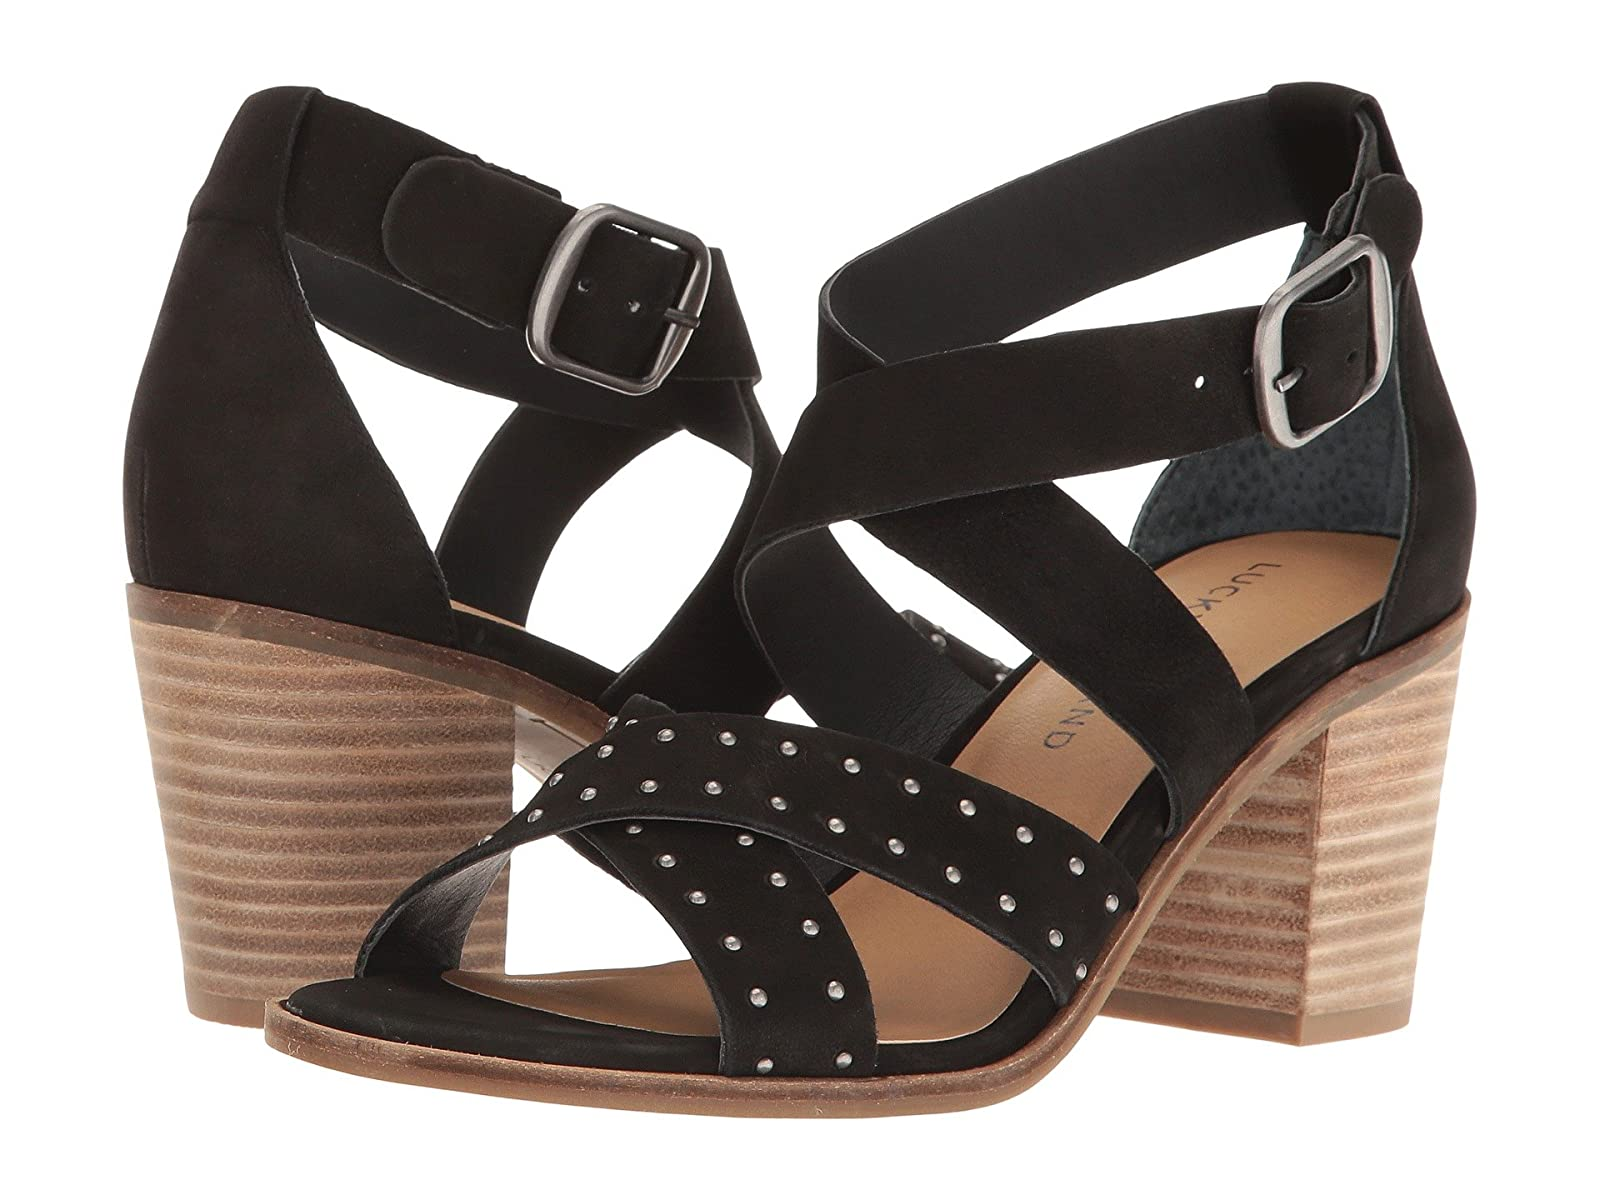 Lucky Brand KeseyCheap and distinctive eye-catching shoes